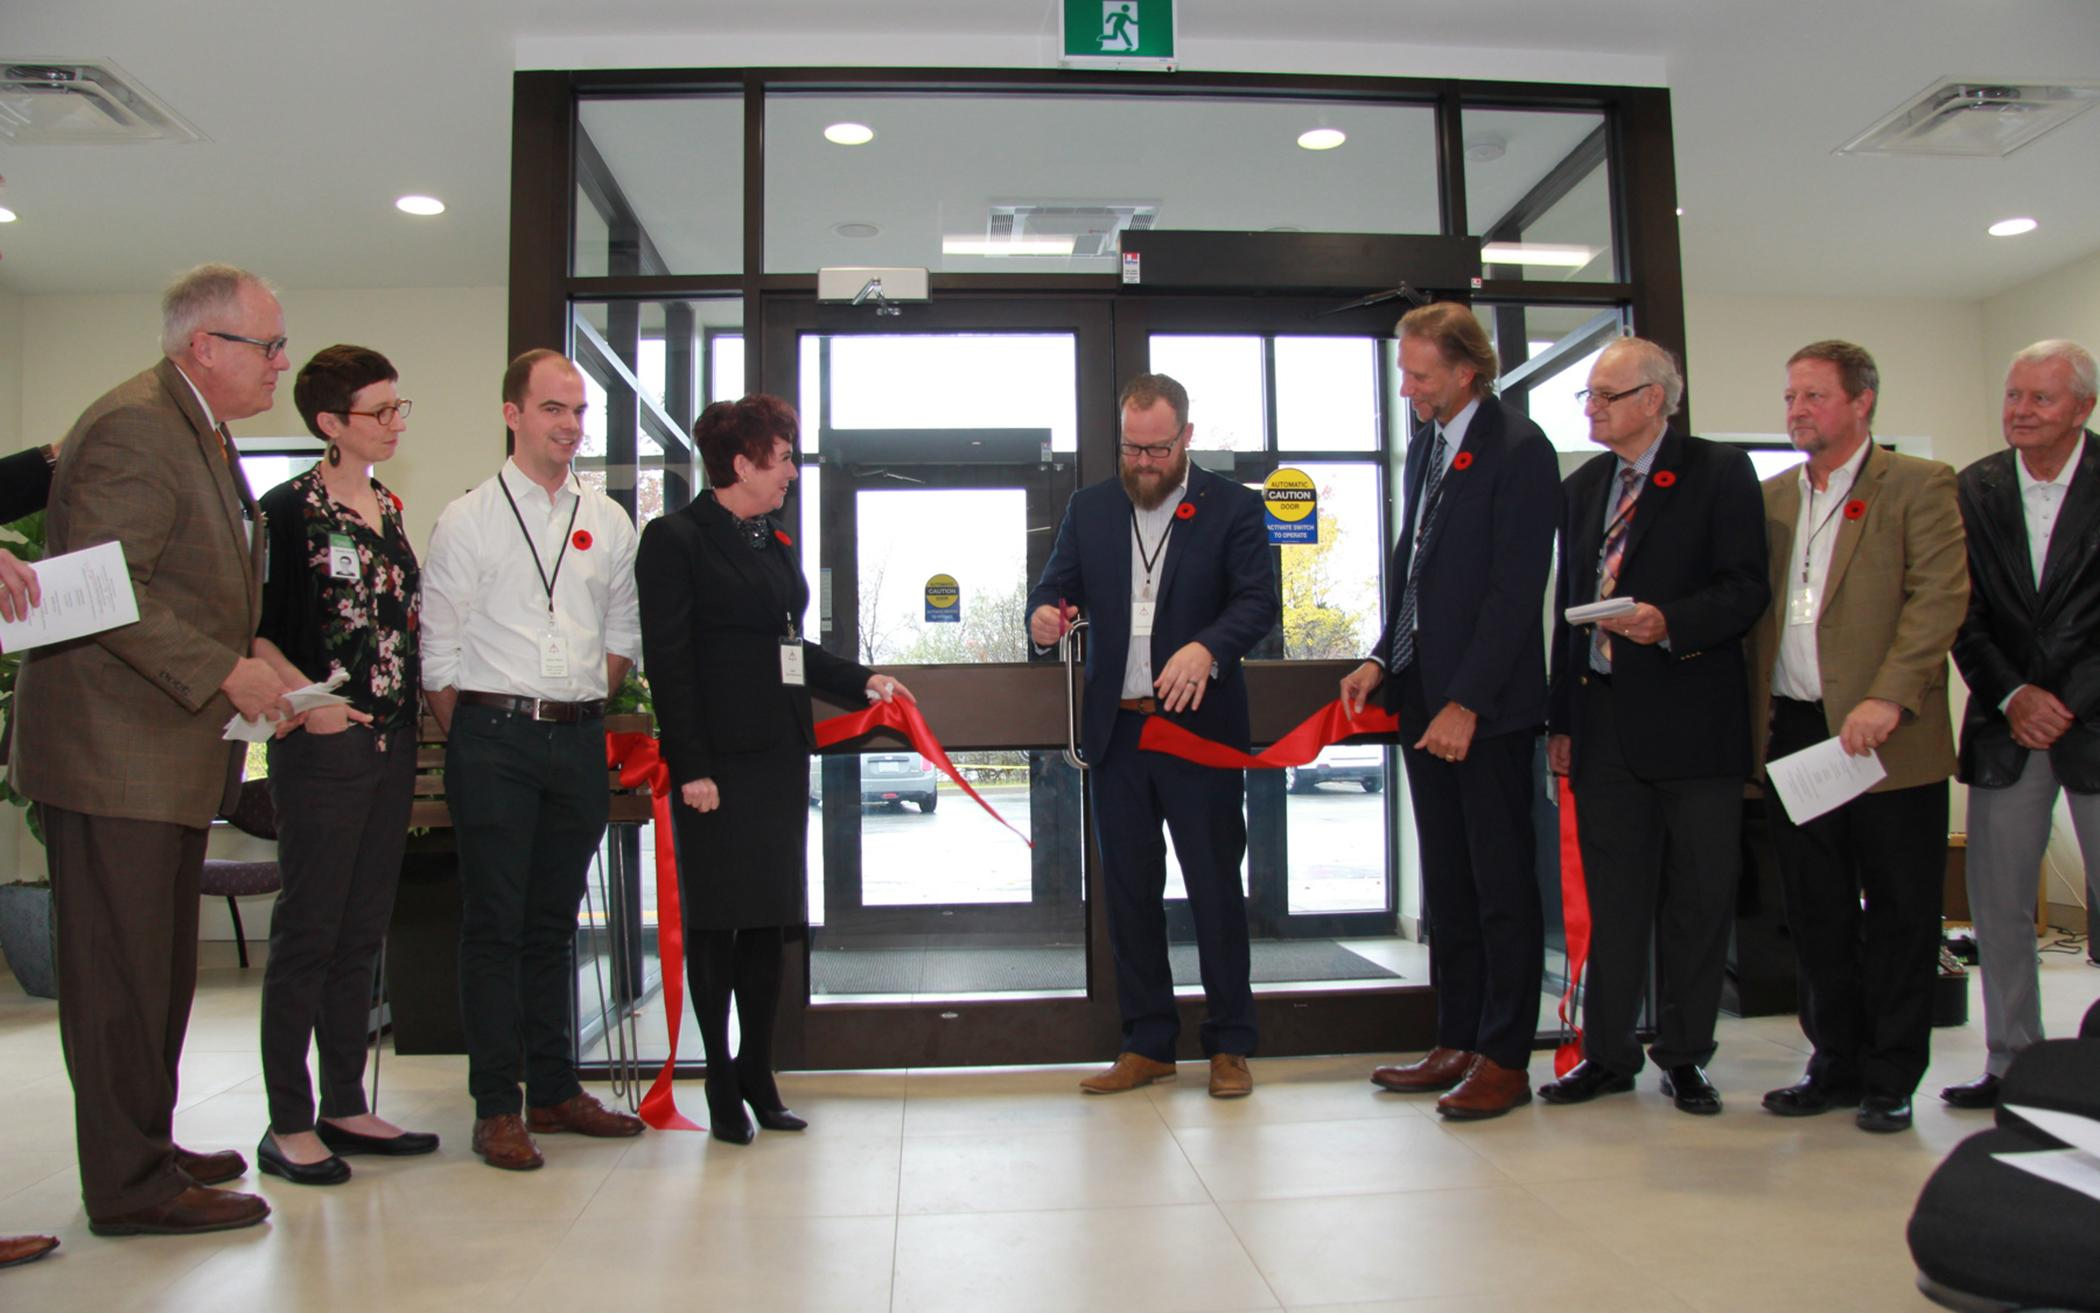 CRCNA Celebrates Re-opening of Canadian Office